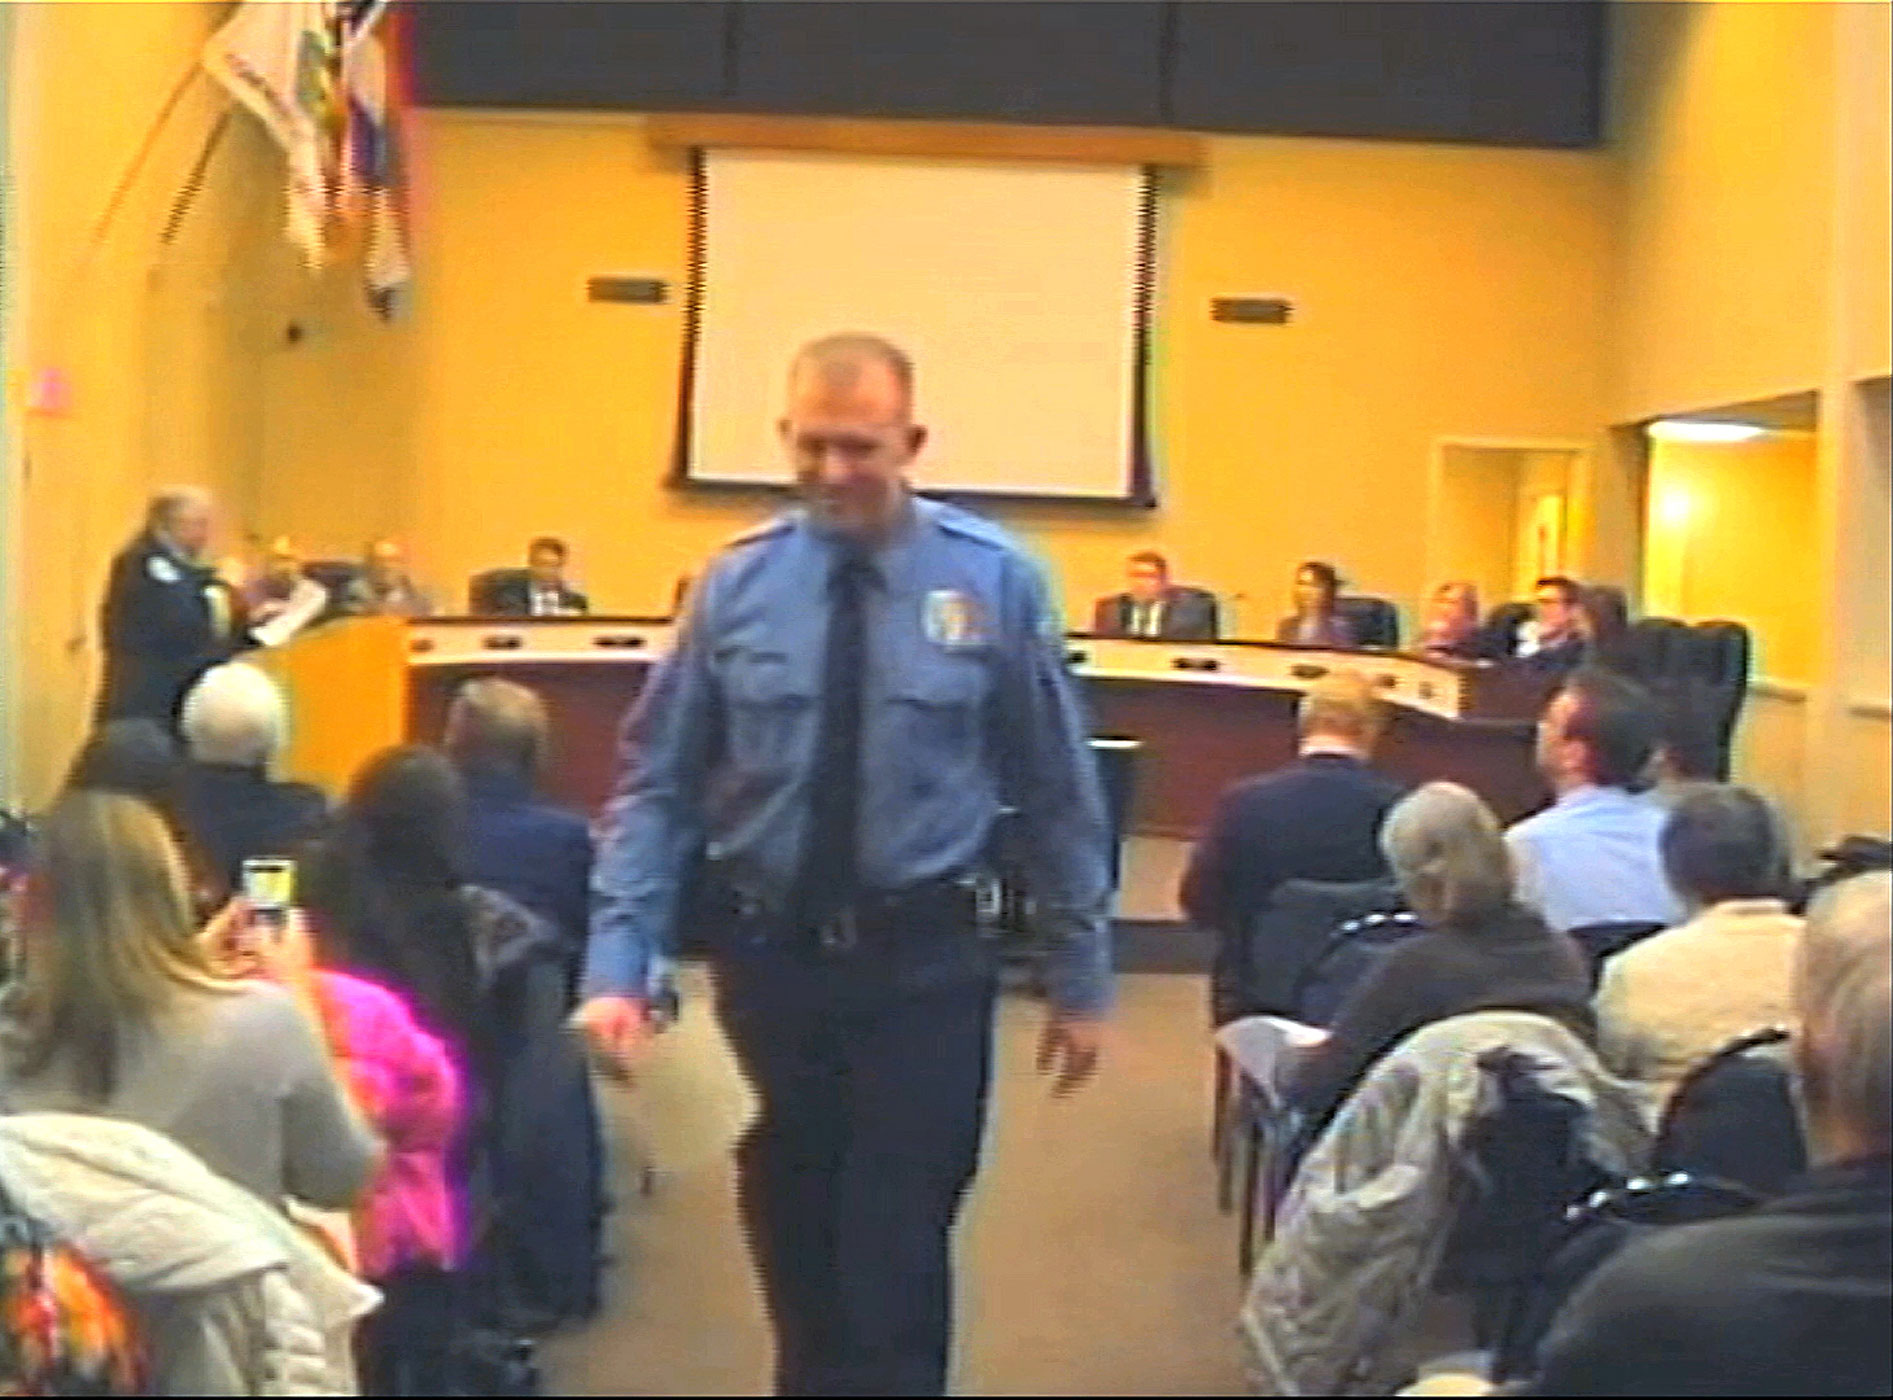 Officer Darren Wilson, seen in a video provided by the City of Ferguson, attends a city council meeting in Ferguson, Mo.